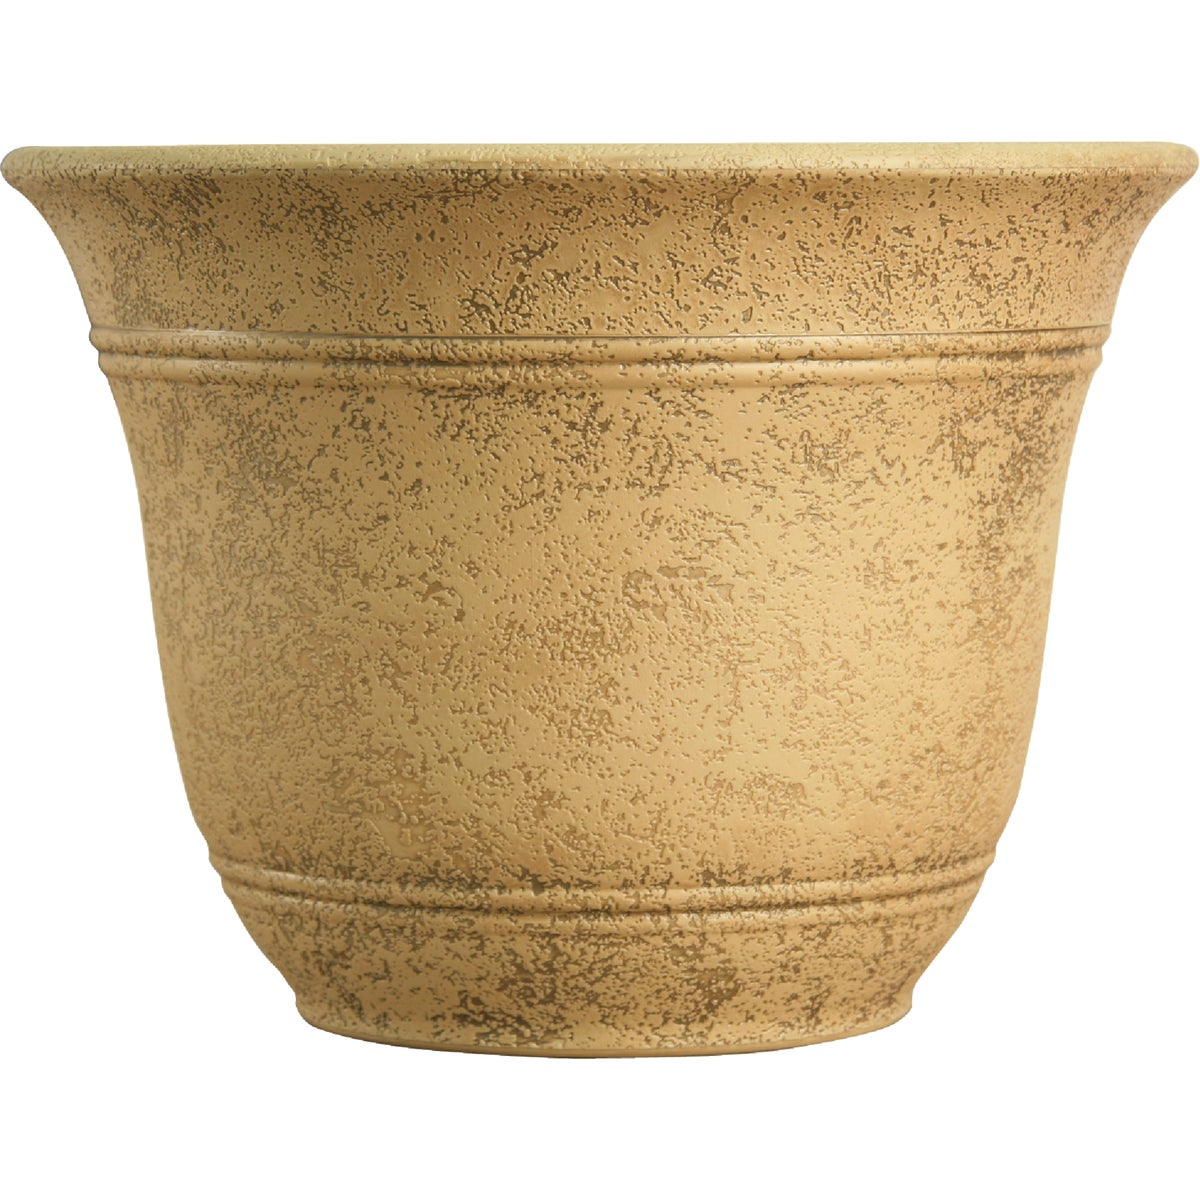 "16"" ARZ SAND SIERRA POT - SRA16001P09 by Myers Industries Inc"